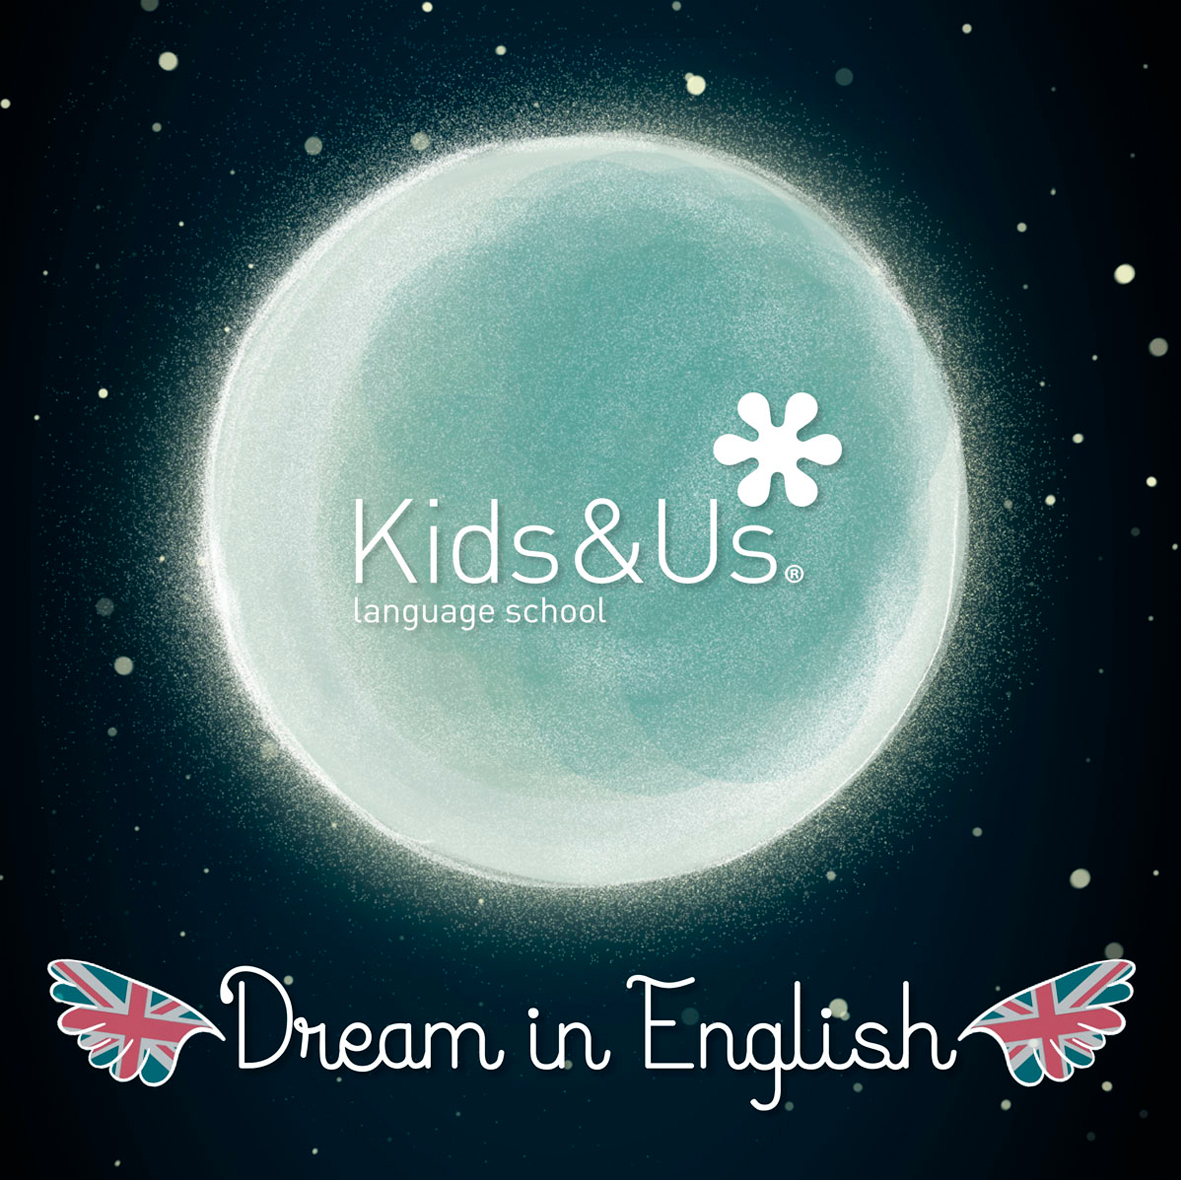 Kids&Us Dream in English